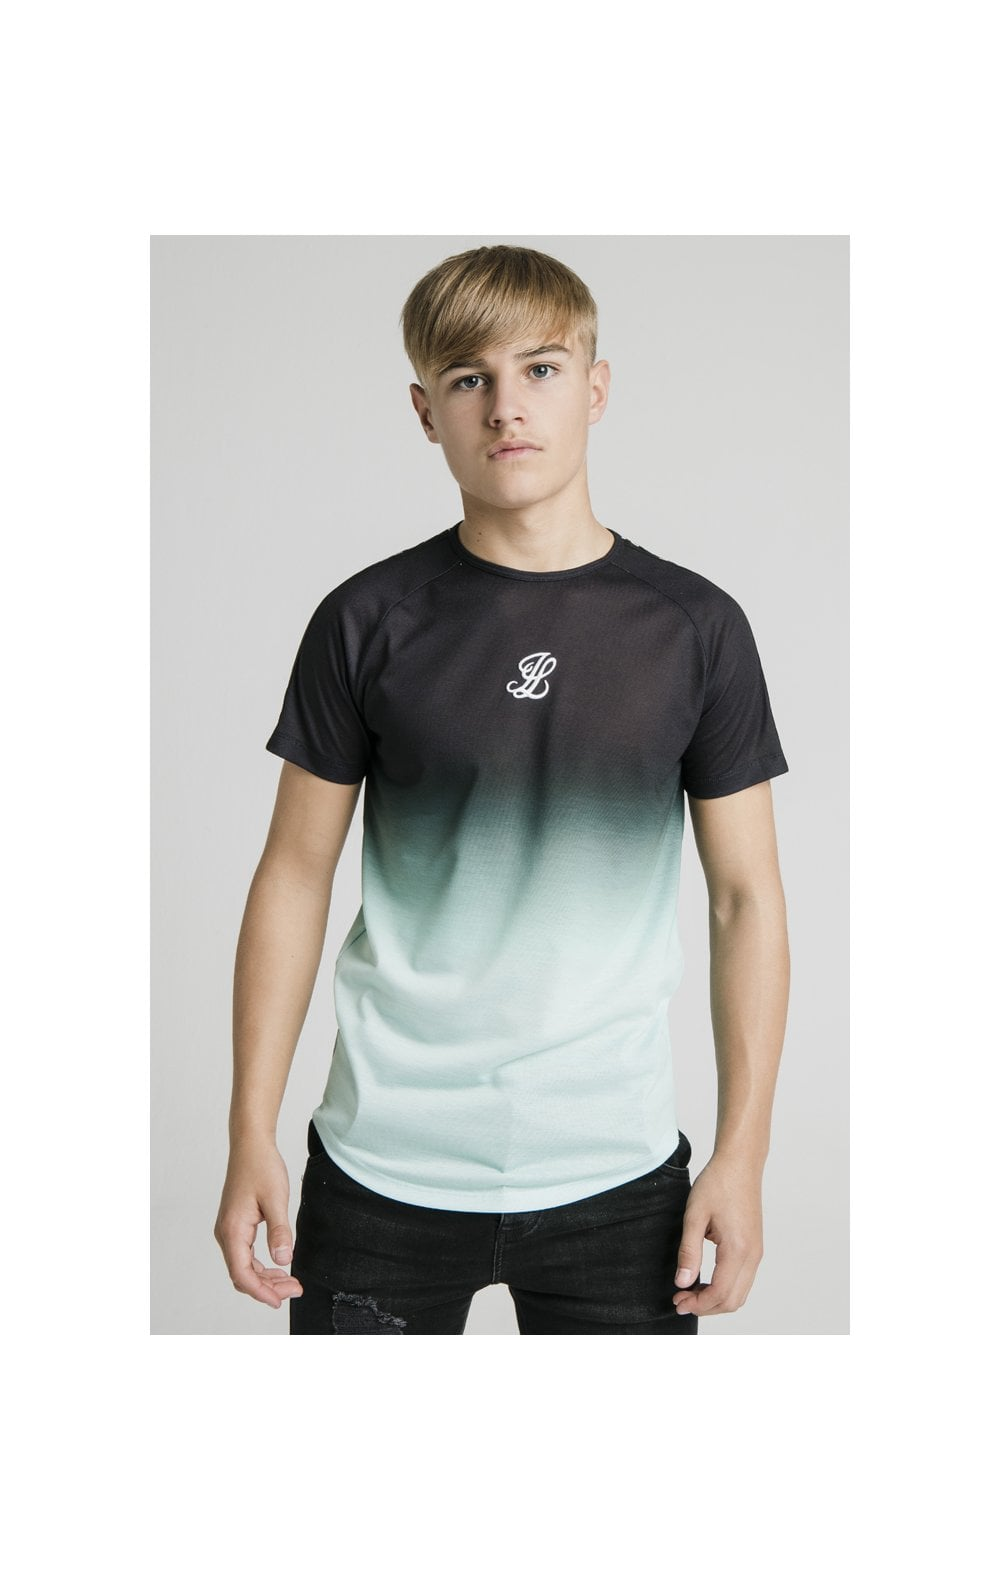 Illusive London Tape Fade Logo Tee - Black & Mint